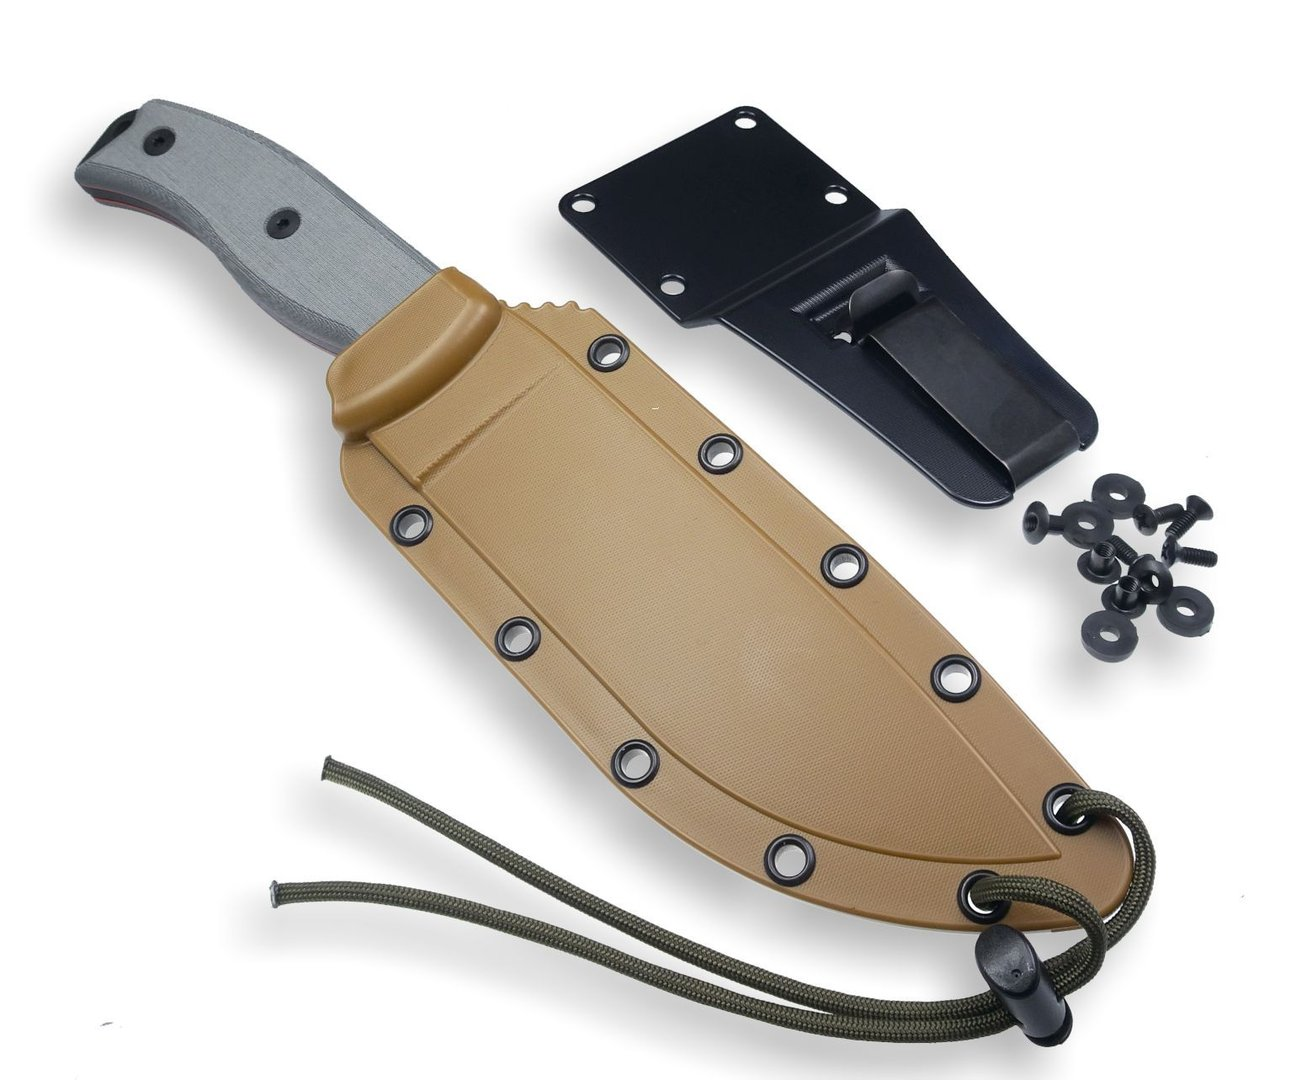 ESEE-6 with brown sheath